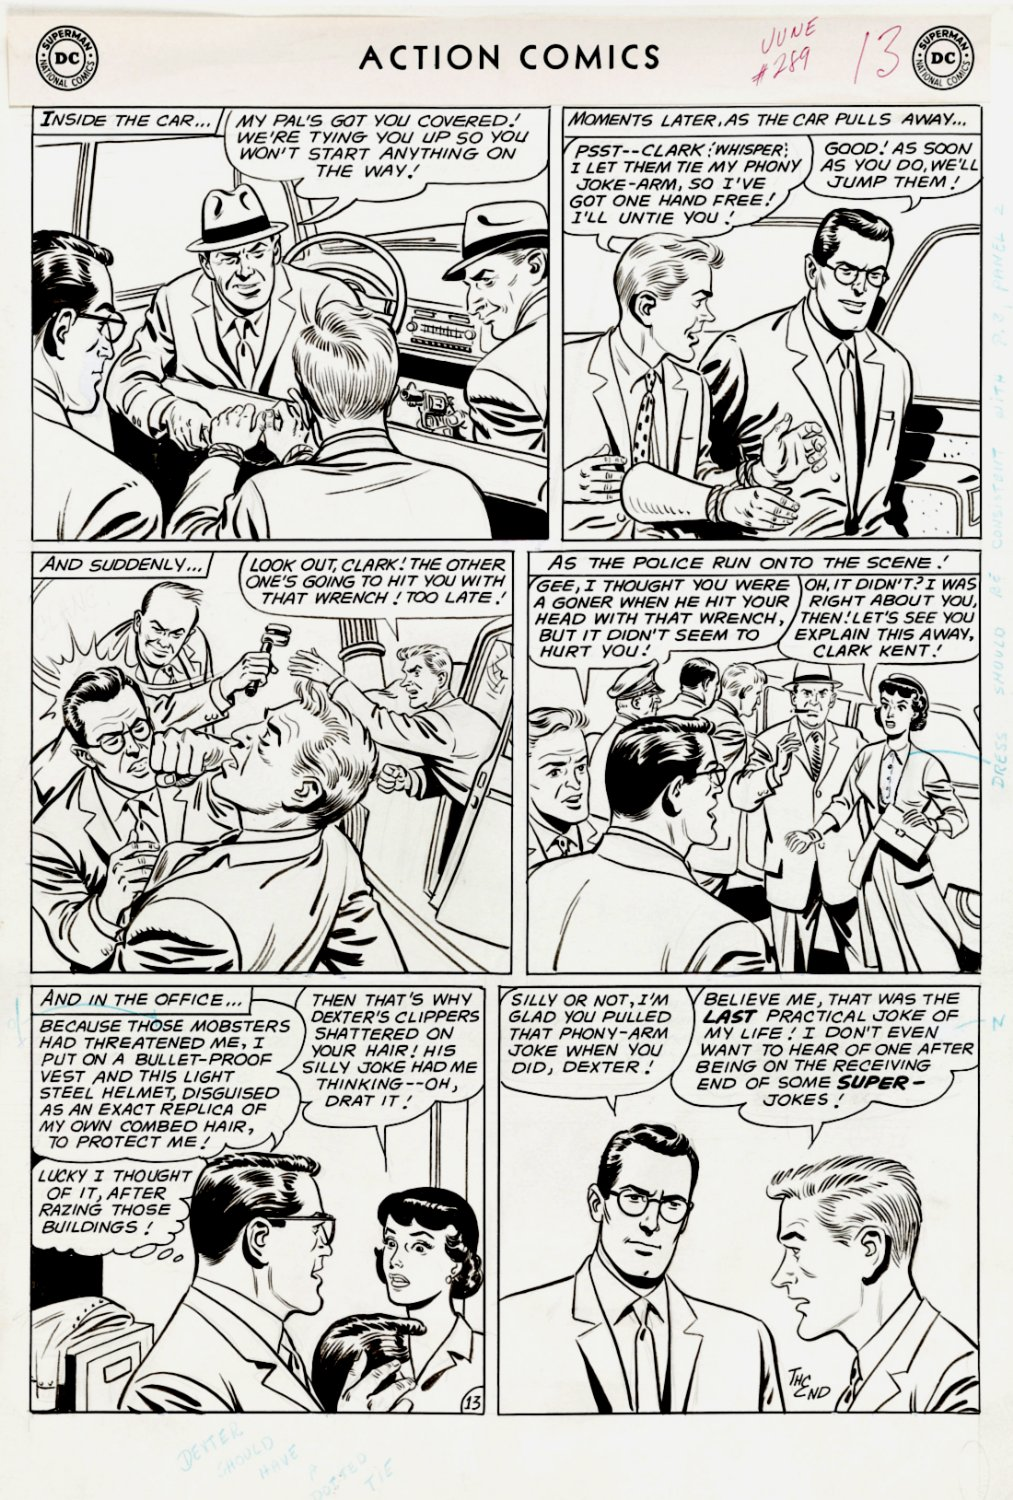 Action Comics #289 p 13 (SOLD LIVE ON THE ROMITAMAN ART DROP PODCAST: 8-28-2021 (RE-WATCH THIS FUNNY ART SELLING SHOW HERE)